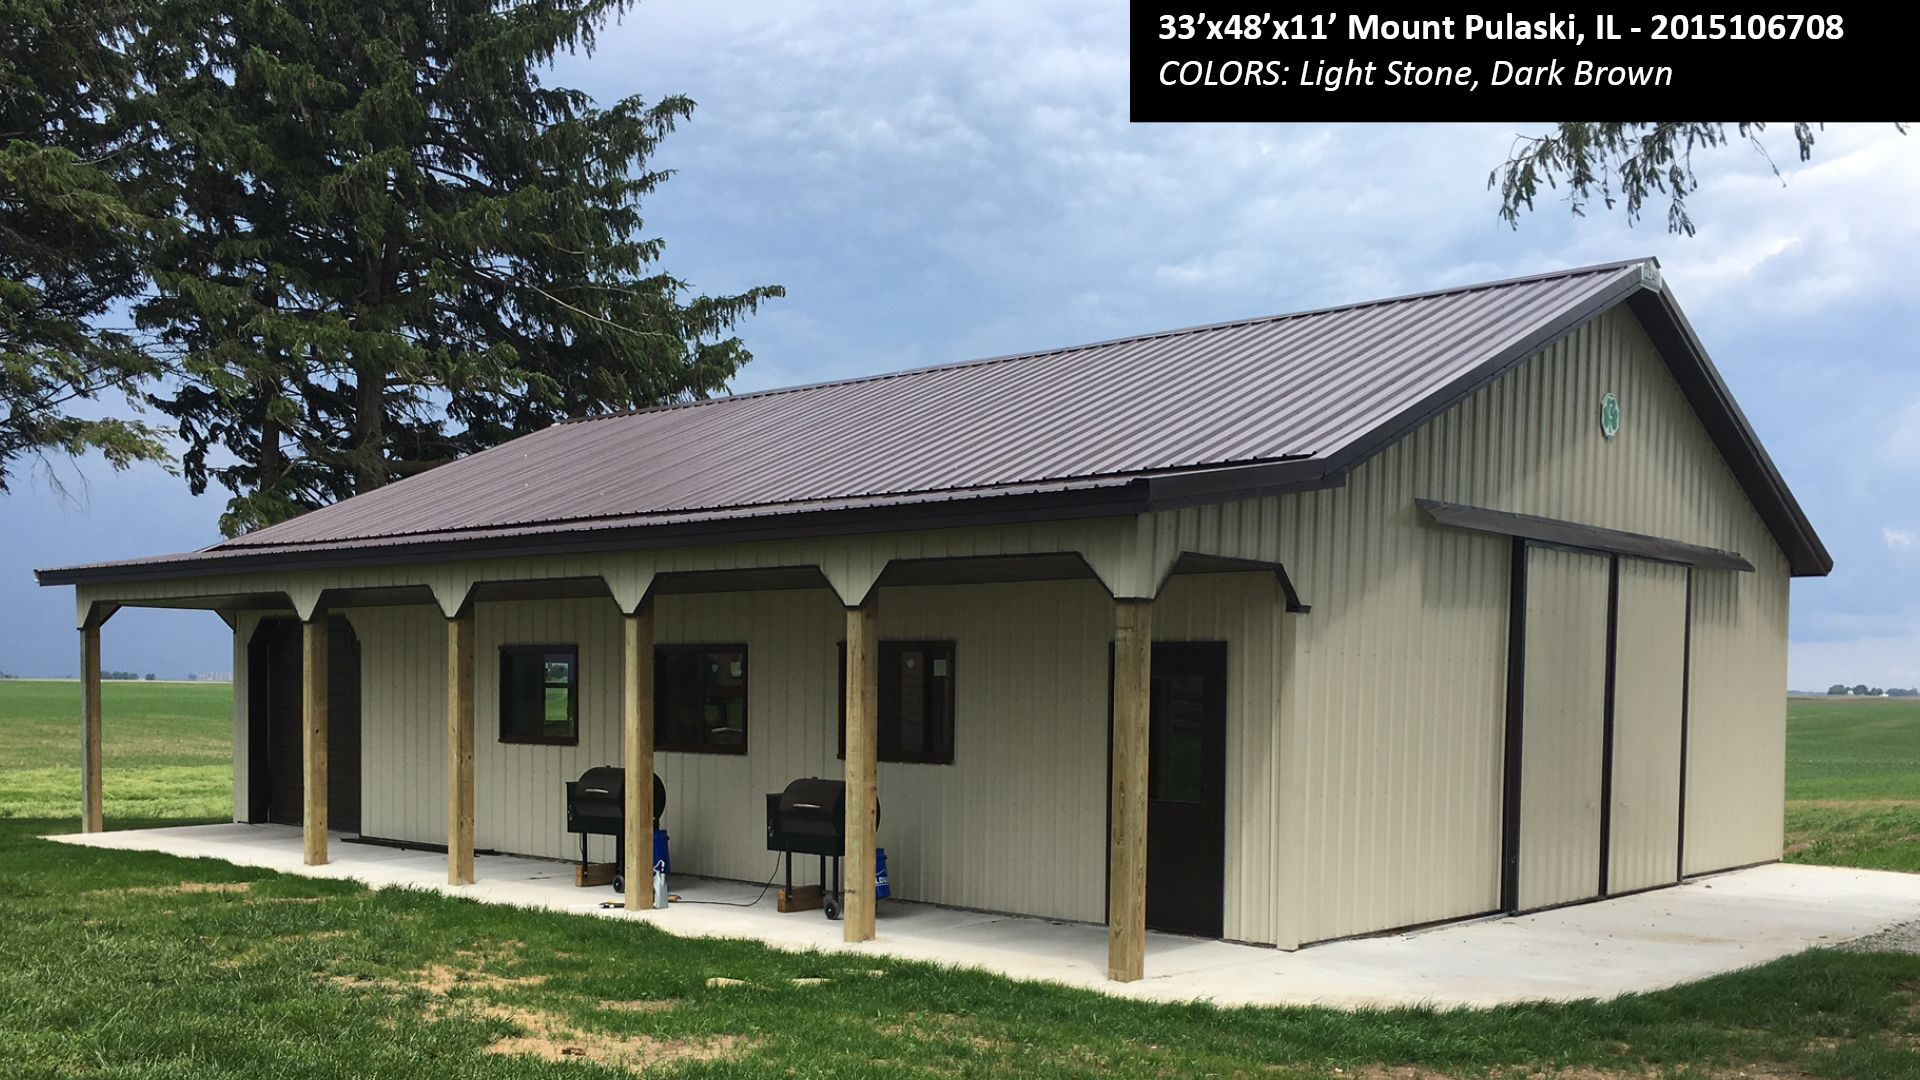 33 X48 X11 Cleary Suburban Energy Miser Building In Mount Pulaski Il Colors Light Stone Dark Brown Cleary Buildings Barns Sheds Building